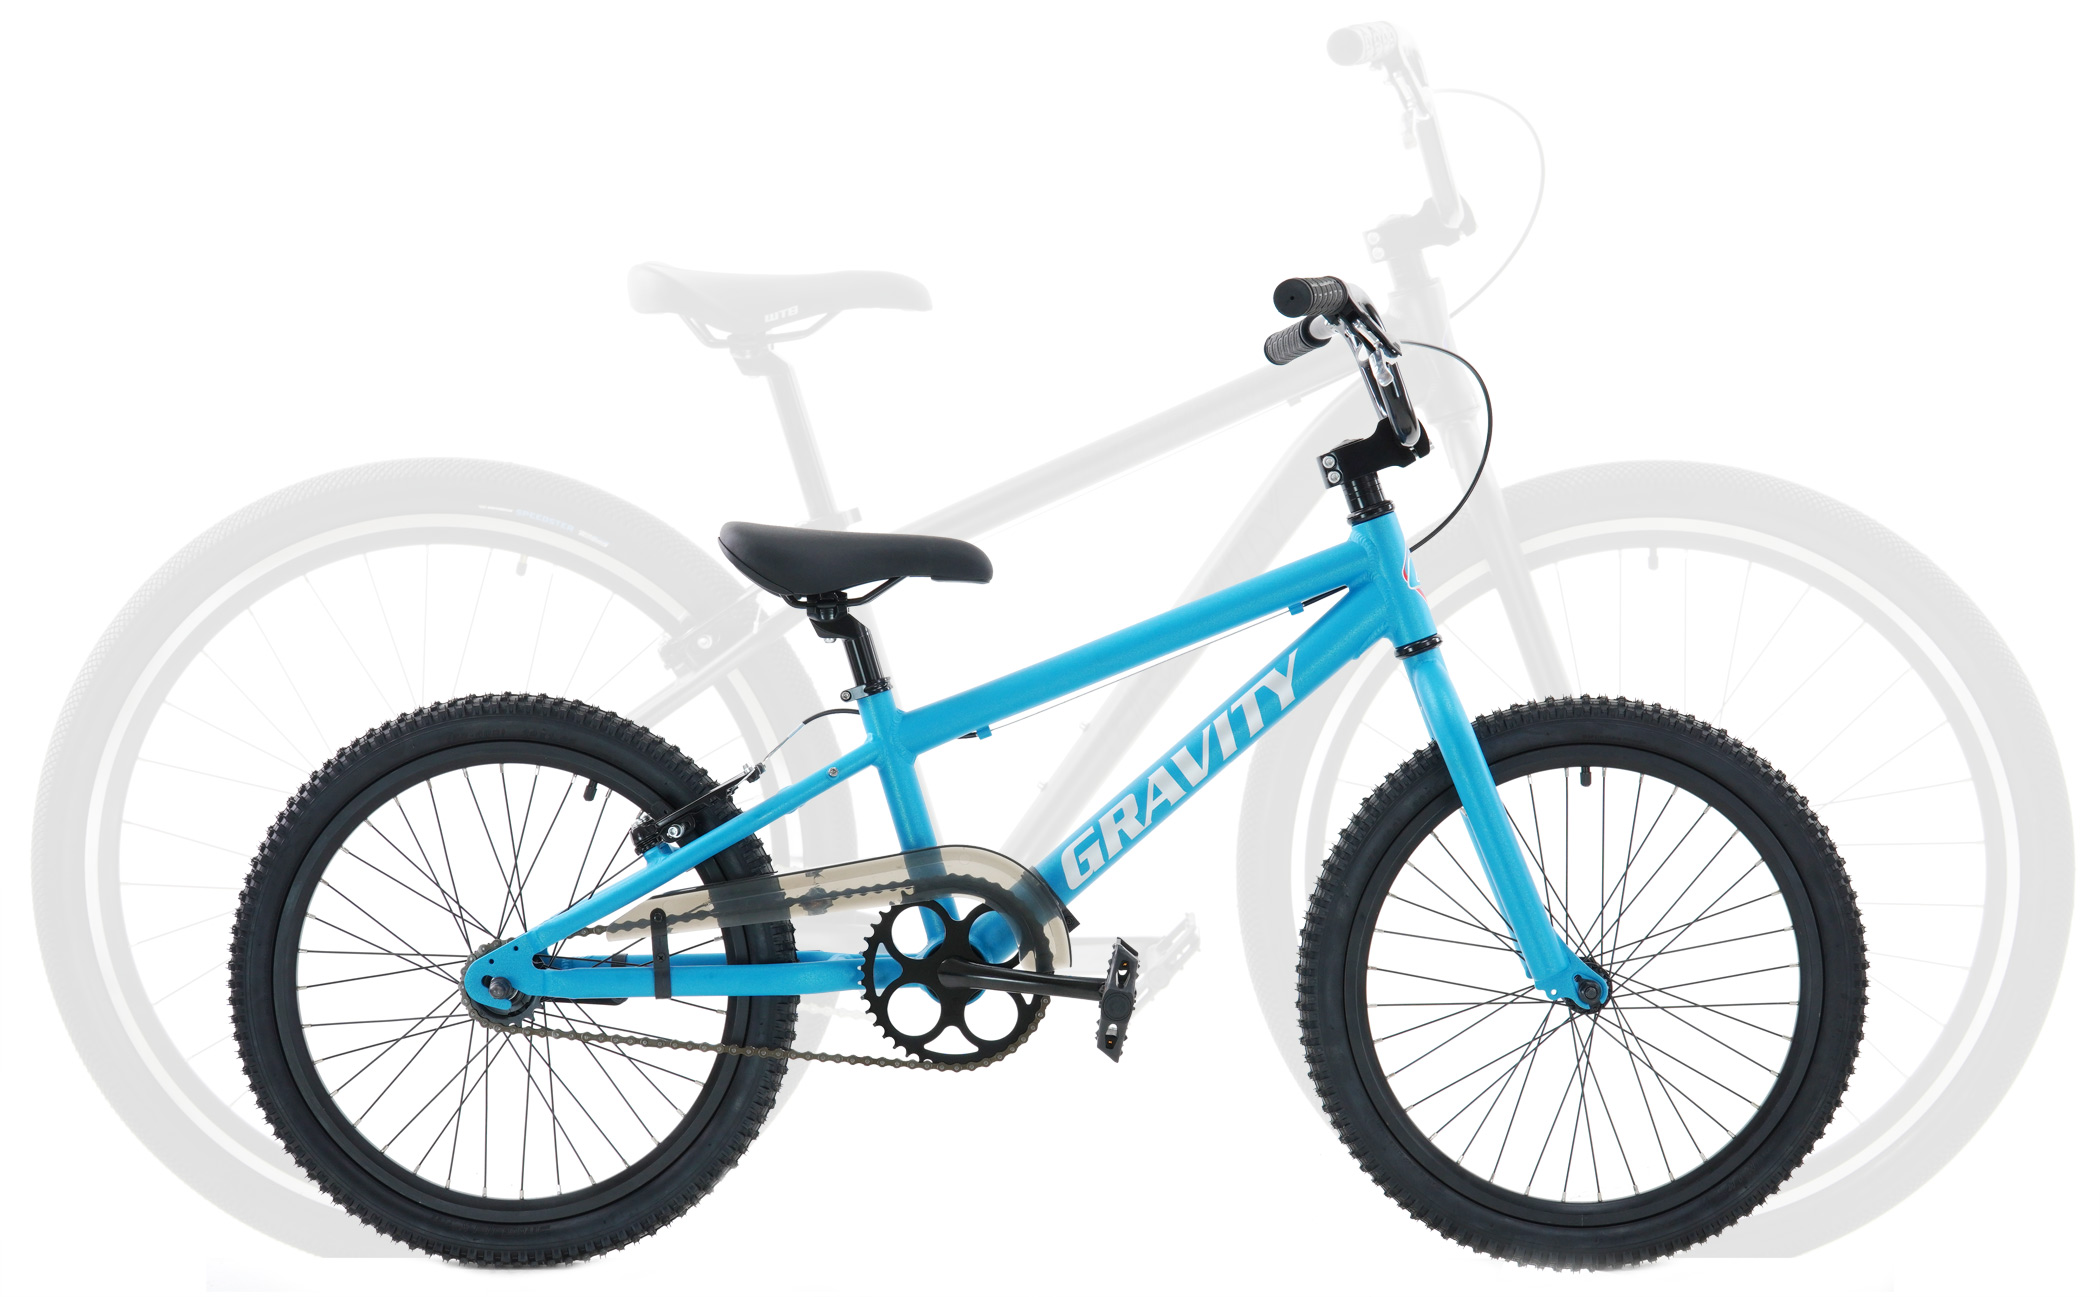 Bikes Gravity Superfast Aluminum BMX with Coaster Brake PLUS Powerful Rear V Brake Bikes Image